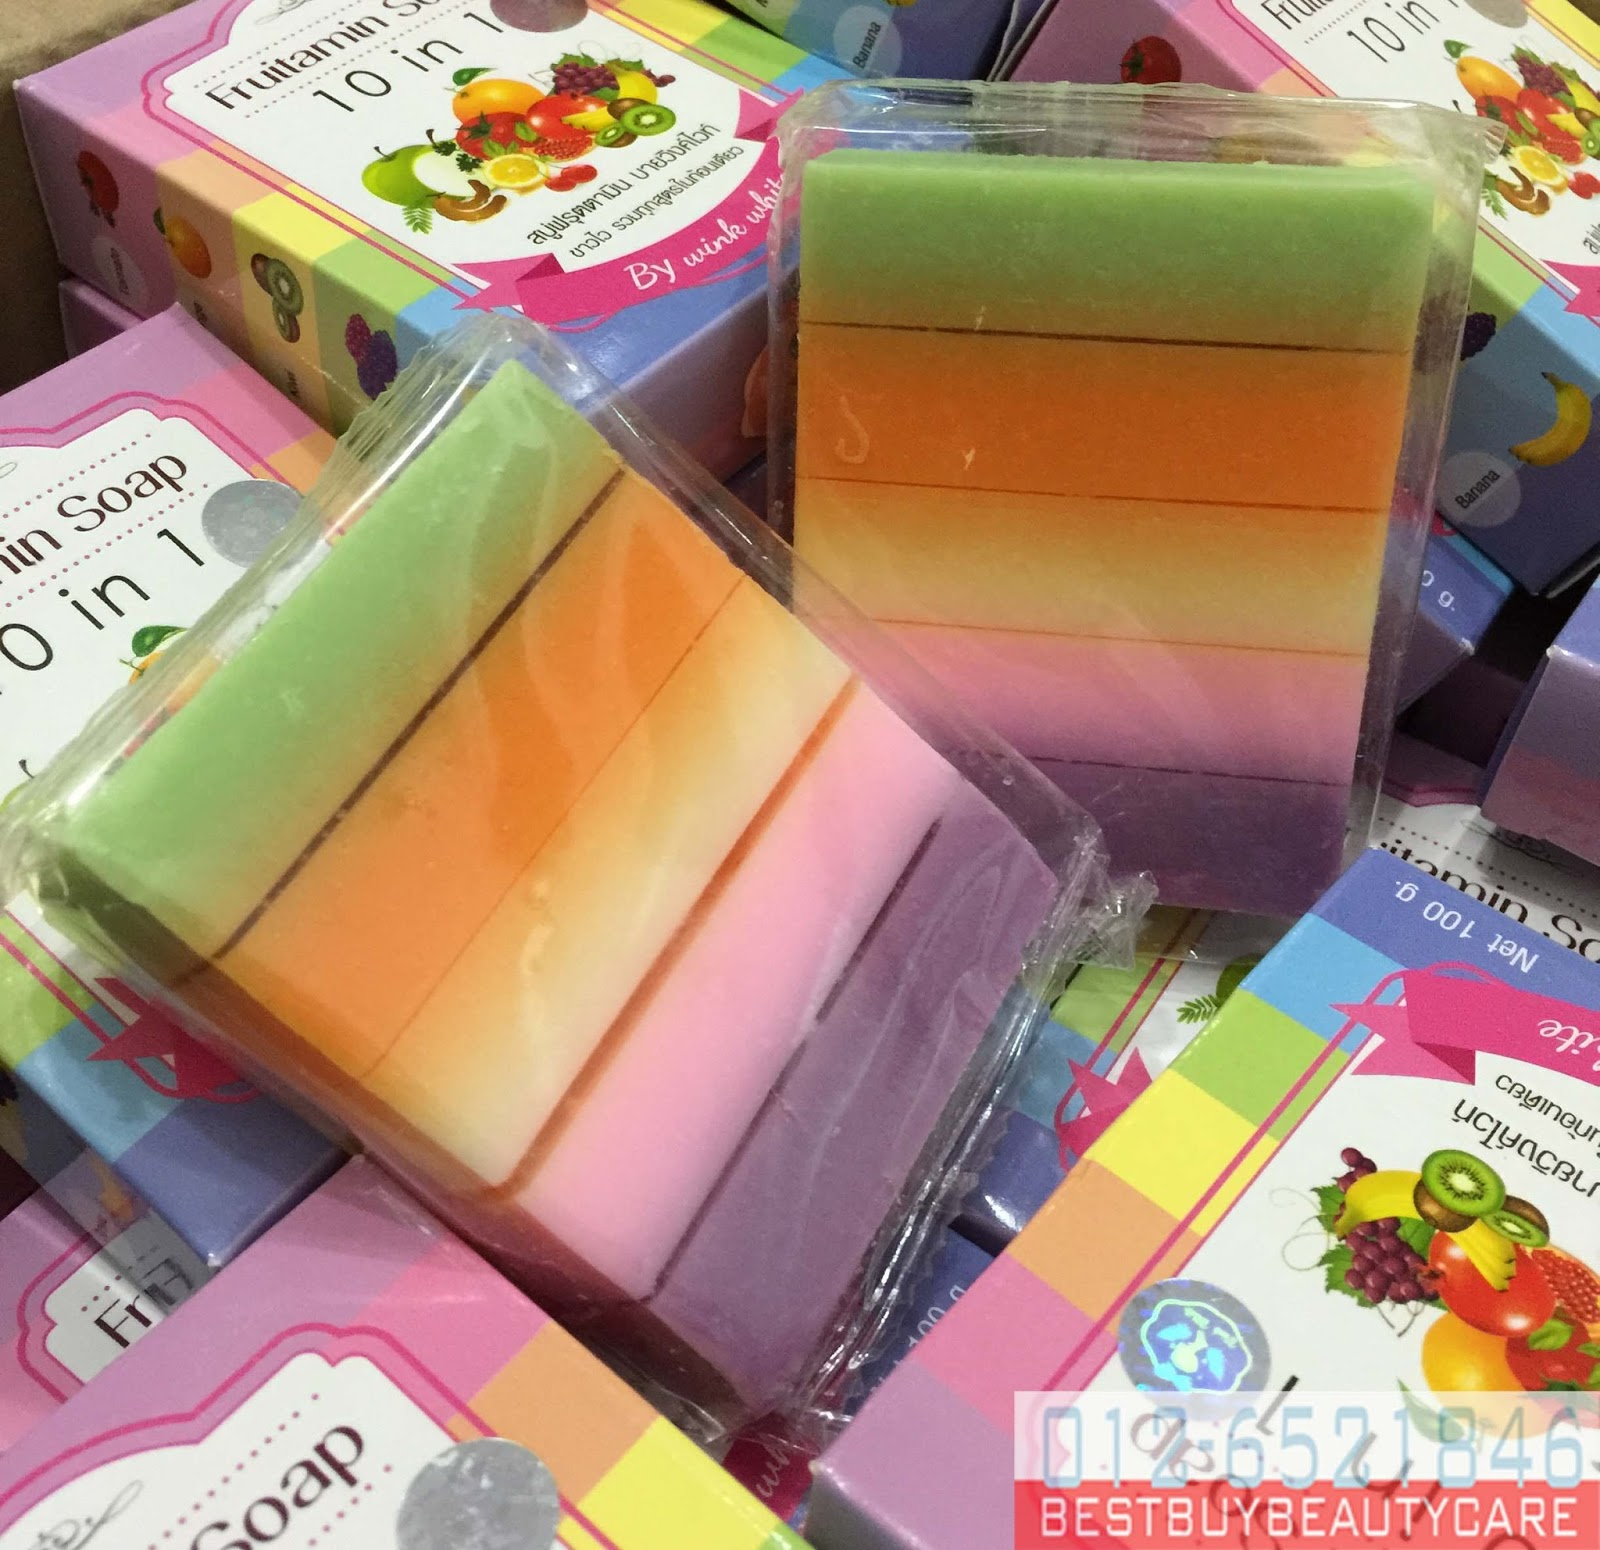 Product Kecantikan Murah Fruitamin All Soap Super Whitening Skin By Wink White